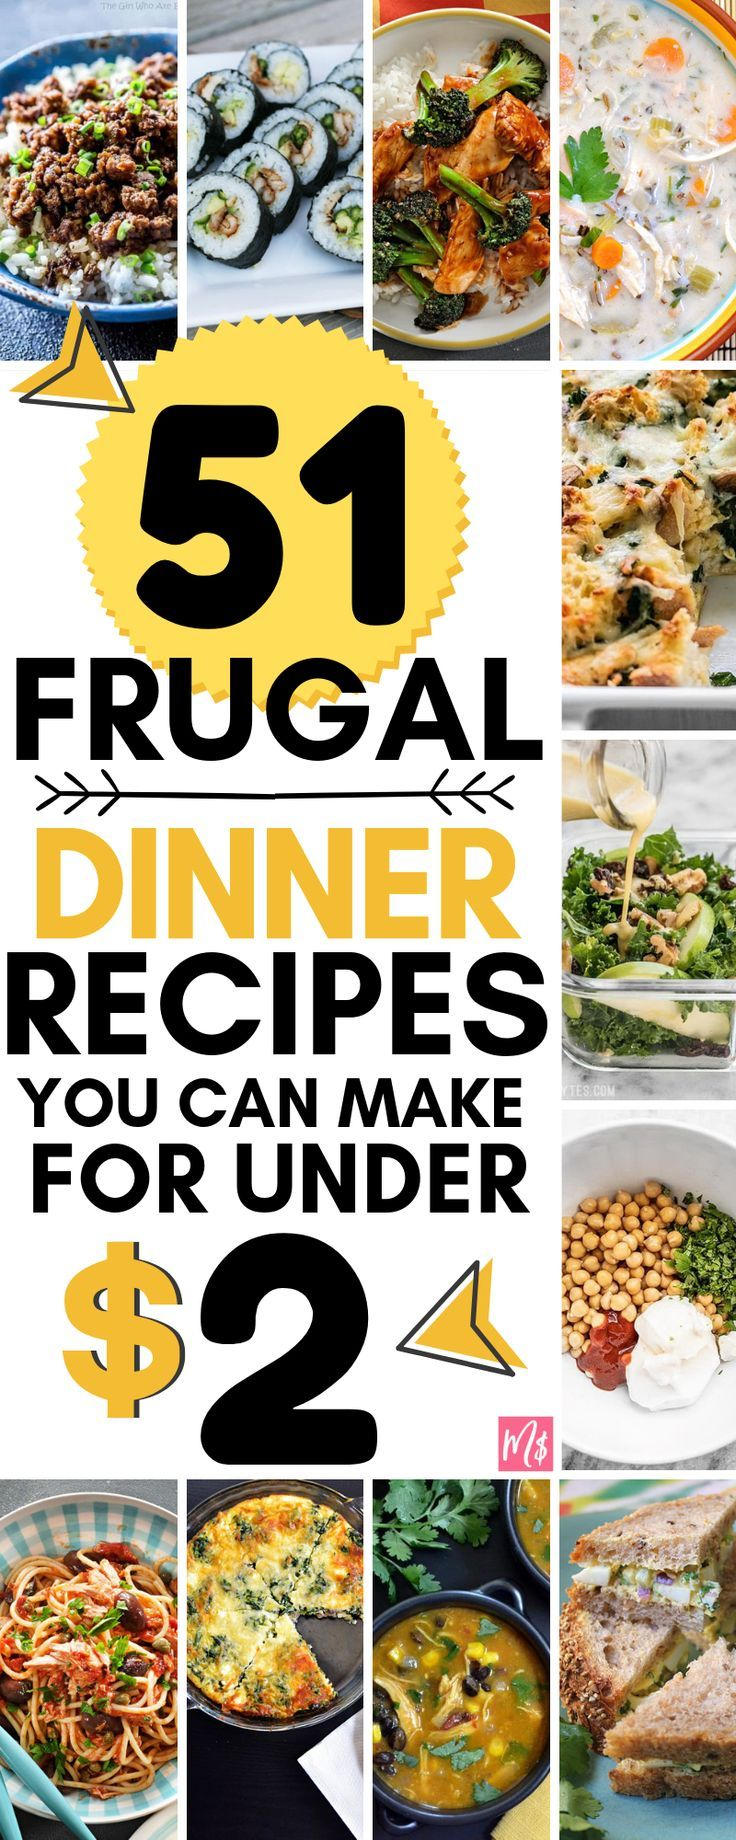 51 Healthy Frugal Dinner Recipes You Can Make for Under $2 images